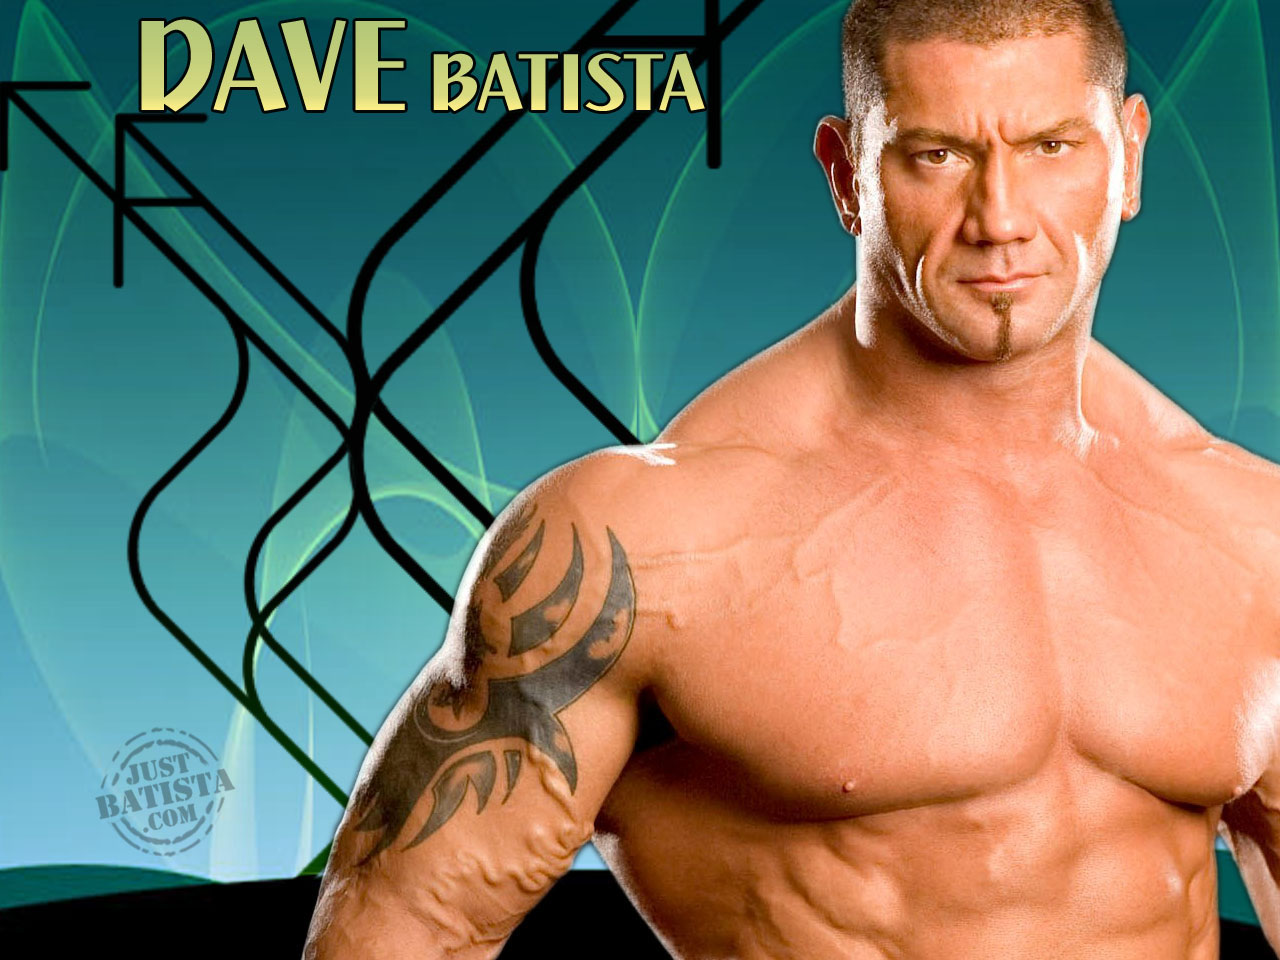 Dave Bautista Wallpapers WWE Star Dave Batista Wallpaper Pictures